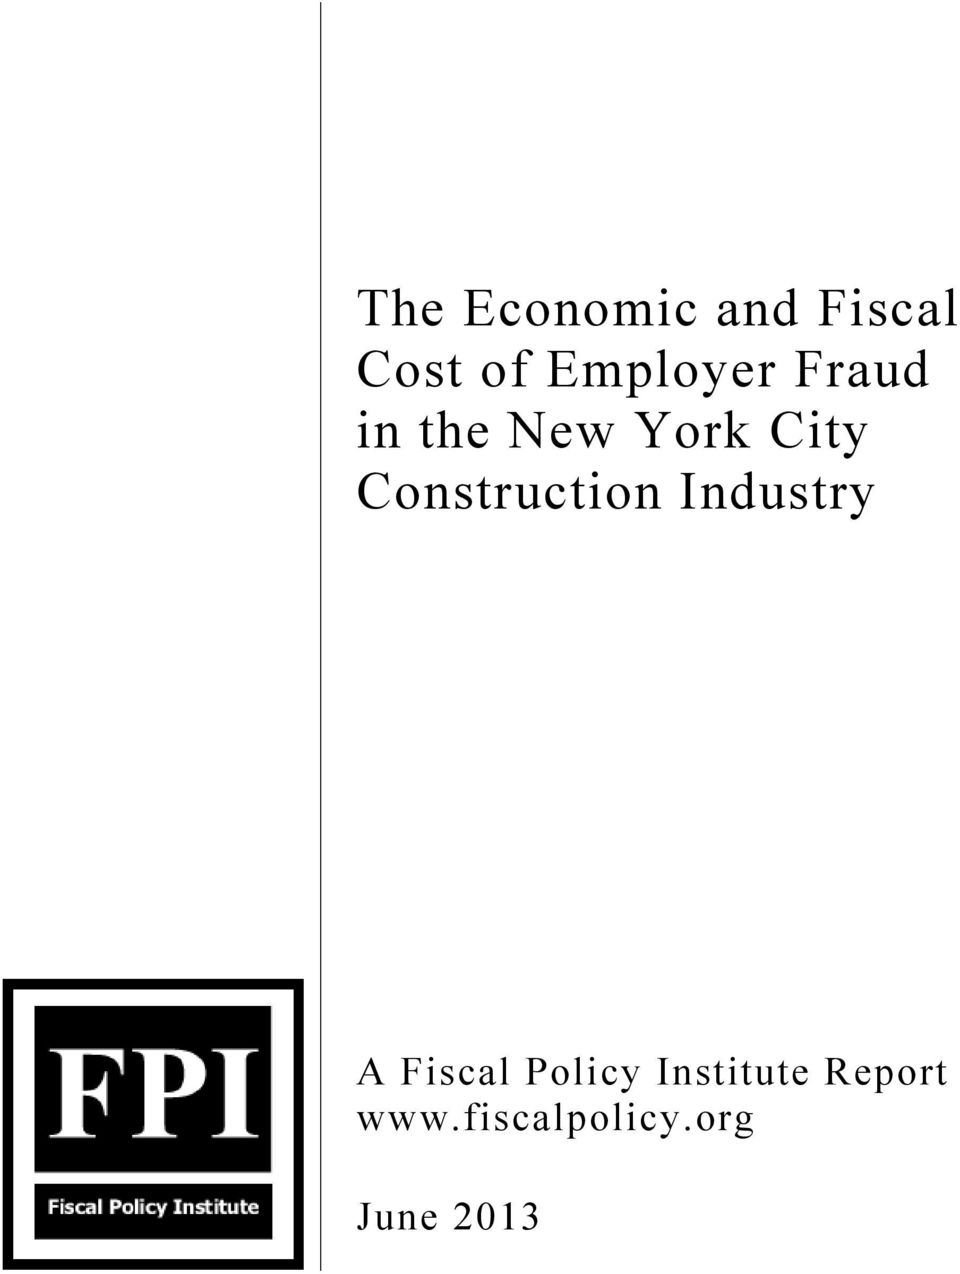 Construction Industry A Fiscal Policy